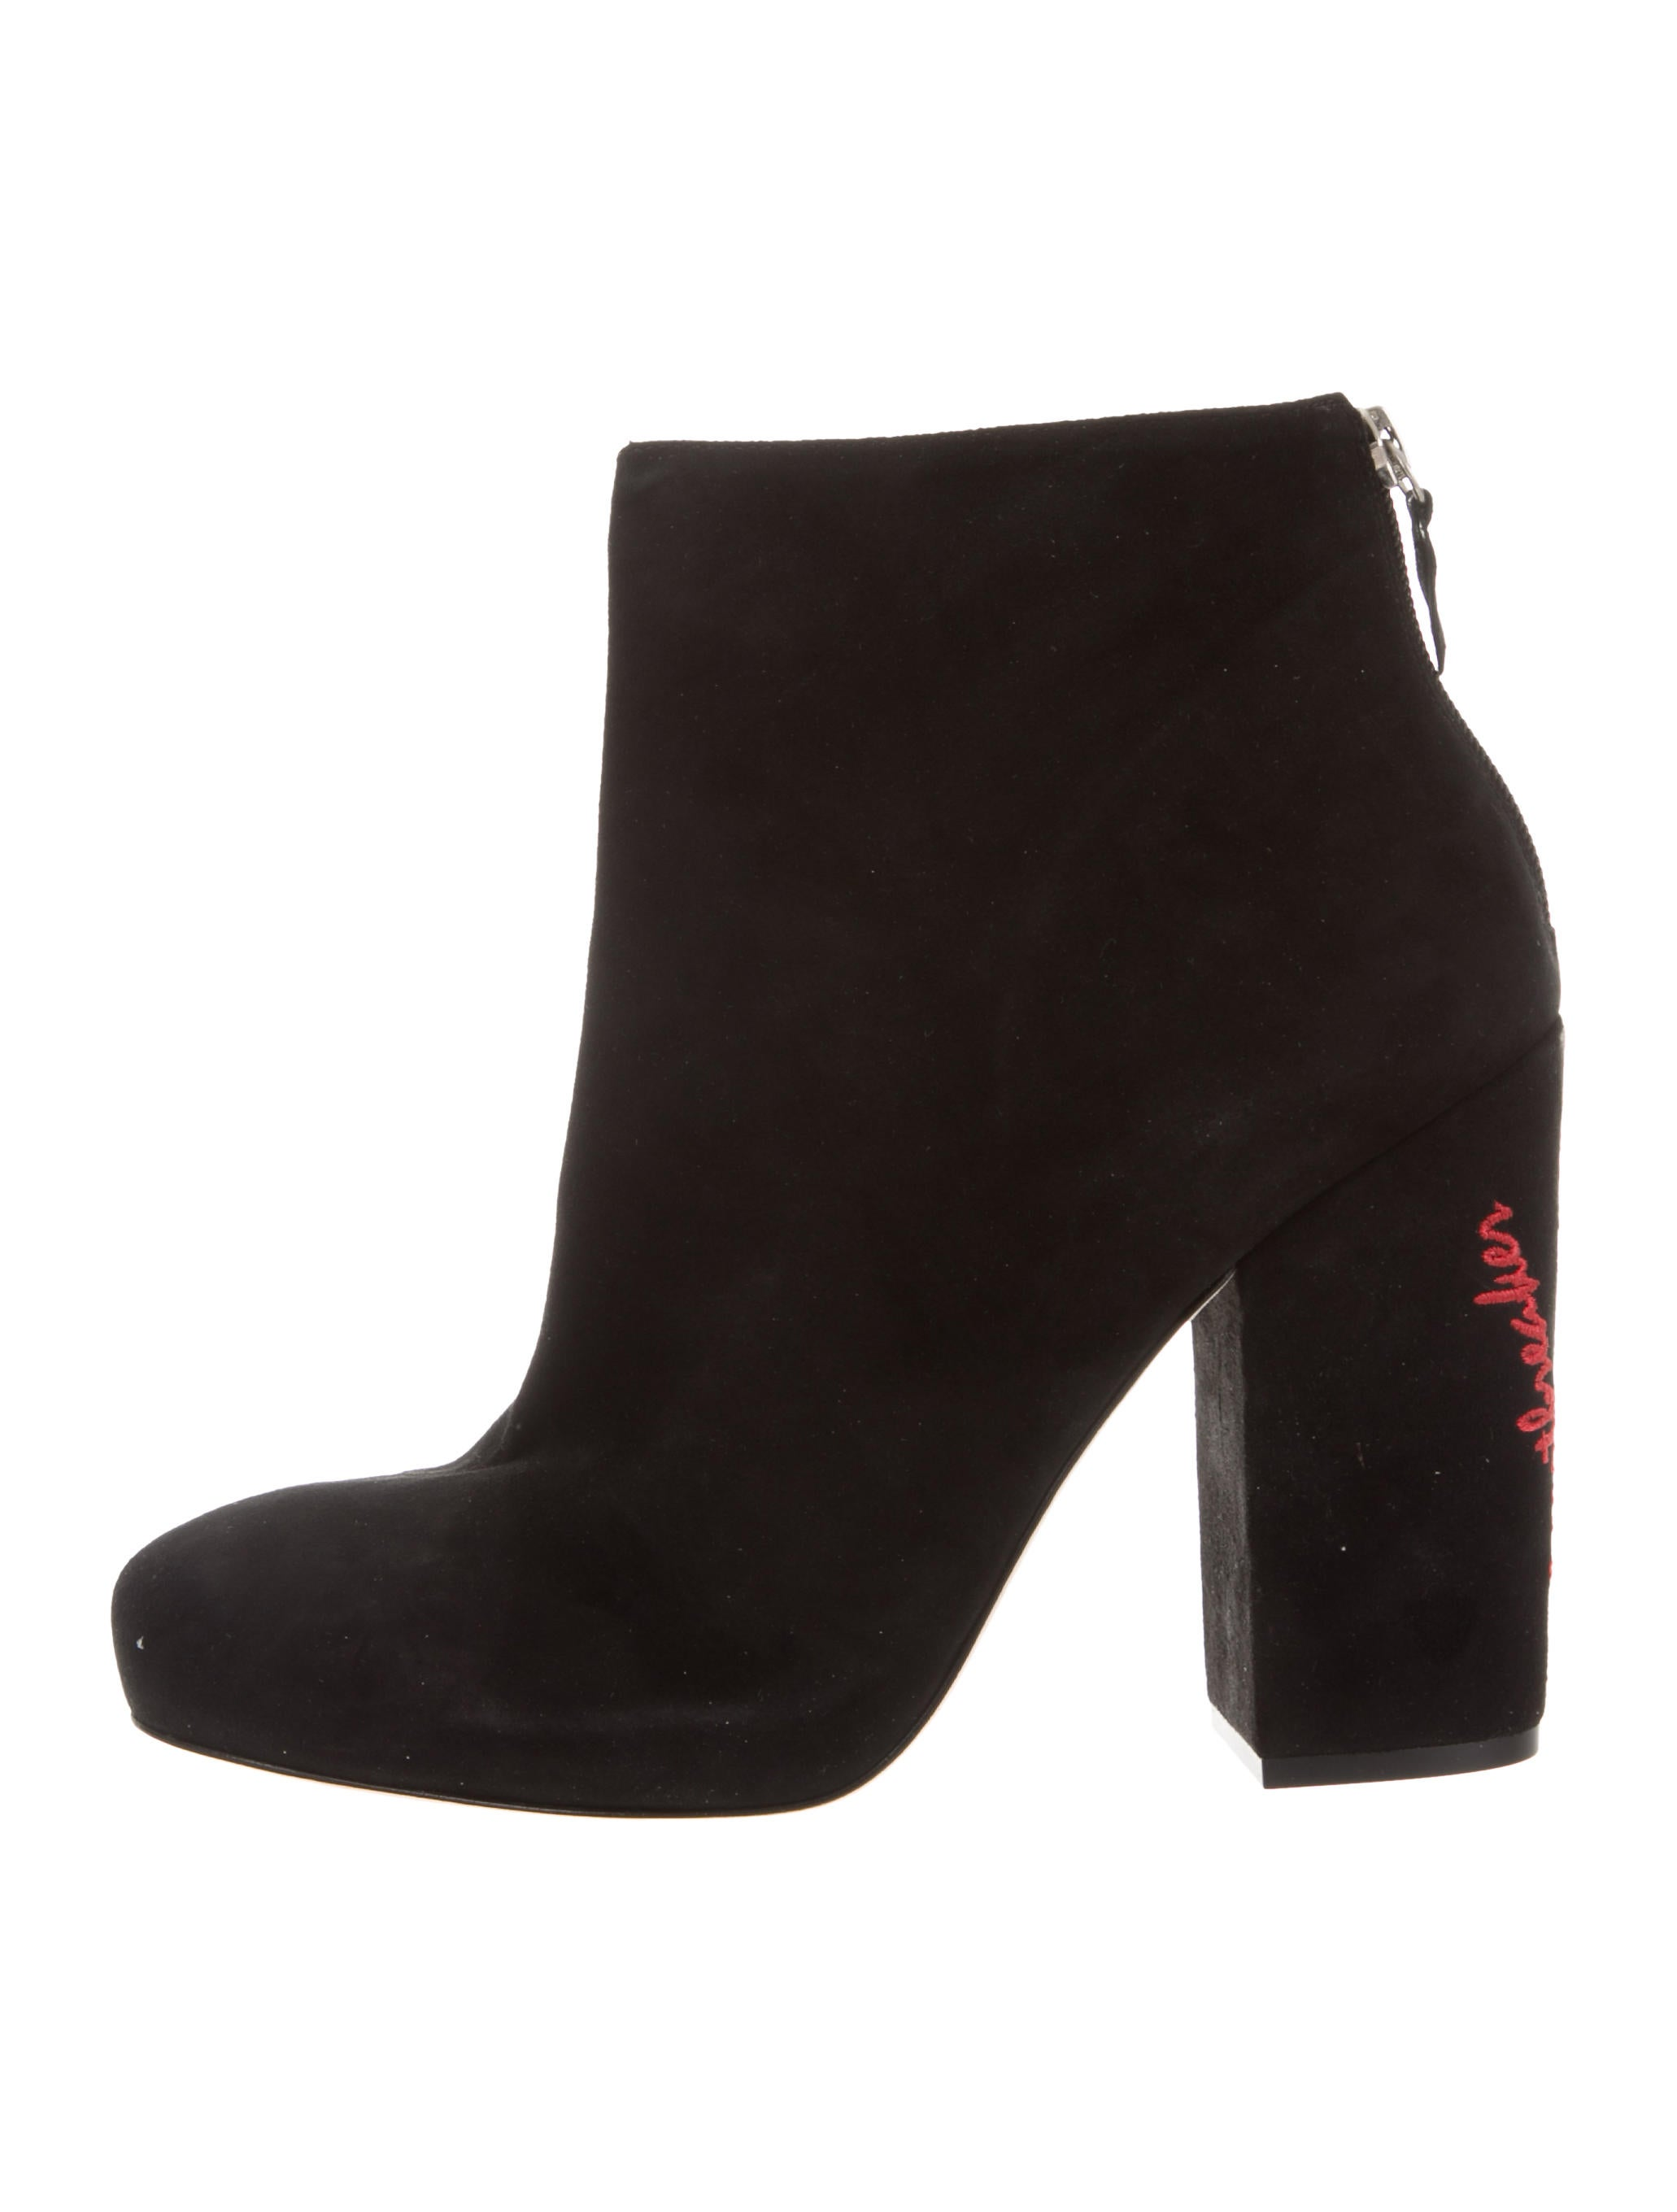 Isa Tapia Argon Heartbreaker Ankle Boots w/ Tags cheap sale free shipping A00EO